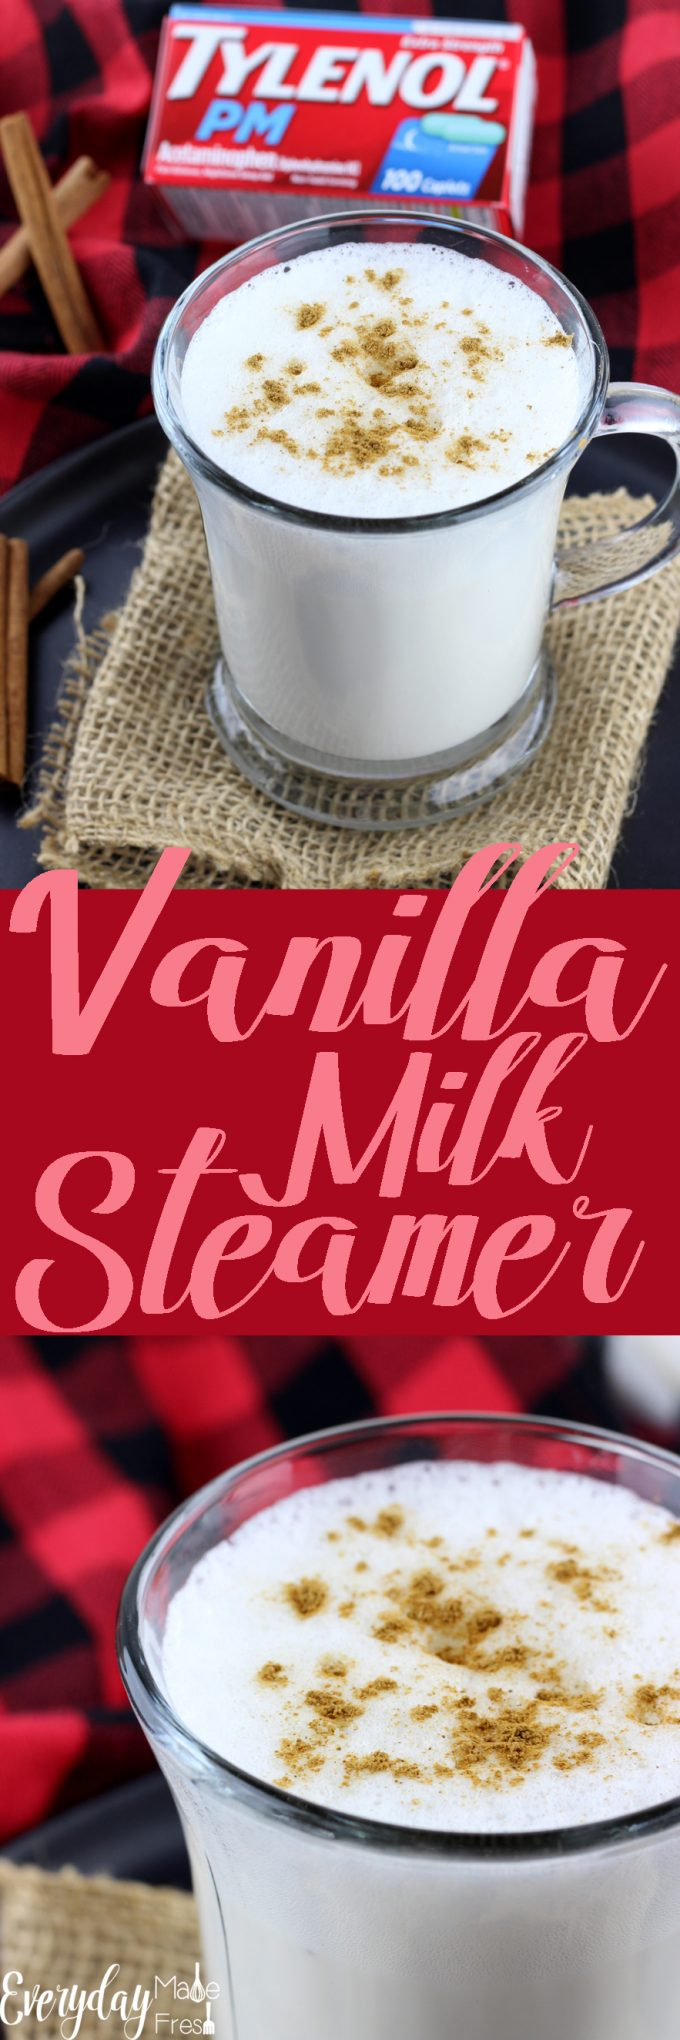 # ad A Vanilla Milk Steamer is the perfect little drink to enjoy before bedtime. A dash of sugar, a splash of vanilla, and a sprinkle of cinnamon make this simple and tasty. Learn more about TYLENOL® PM at Walgreens on the blog! #ForBetterTomorrows #BetterTomorrows #FallBack   EverydayMadeFresh.com